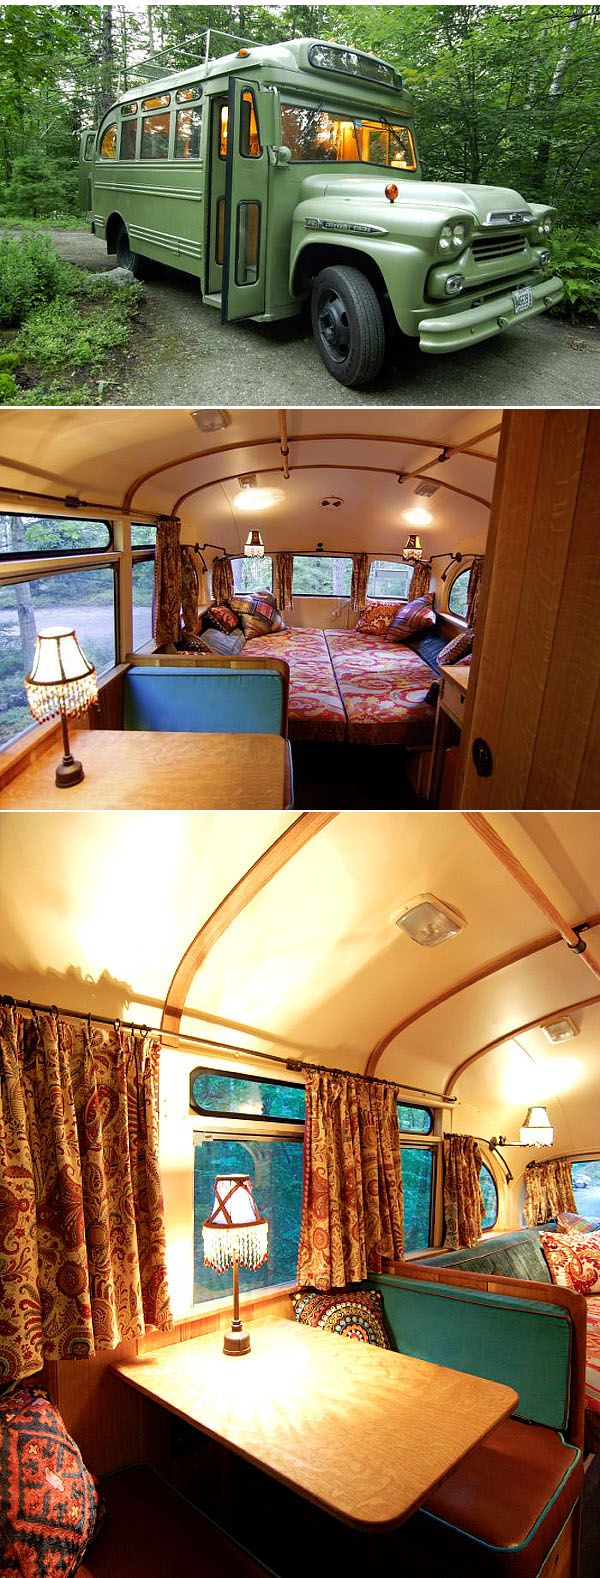 1959 Chevrolet Viking Short Bus Guest Bedroom: This will be the way we add bedrooms to a small house, w/repurposed buses or airstream caravans :)